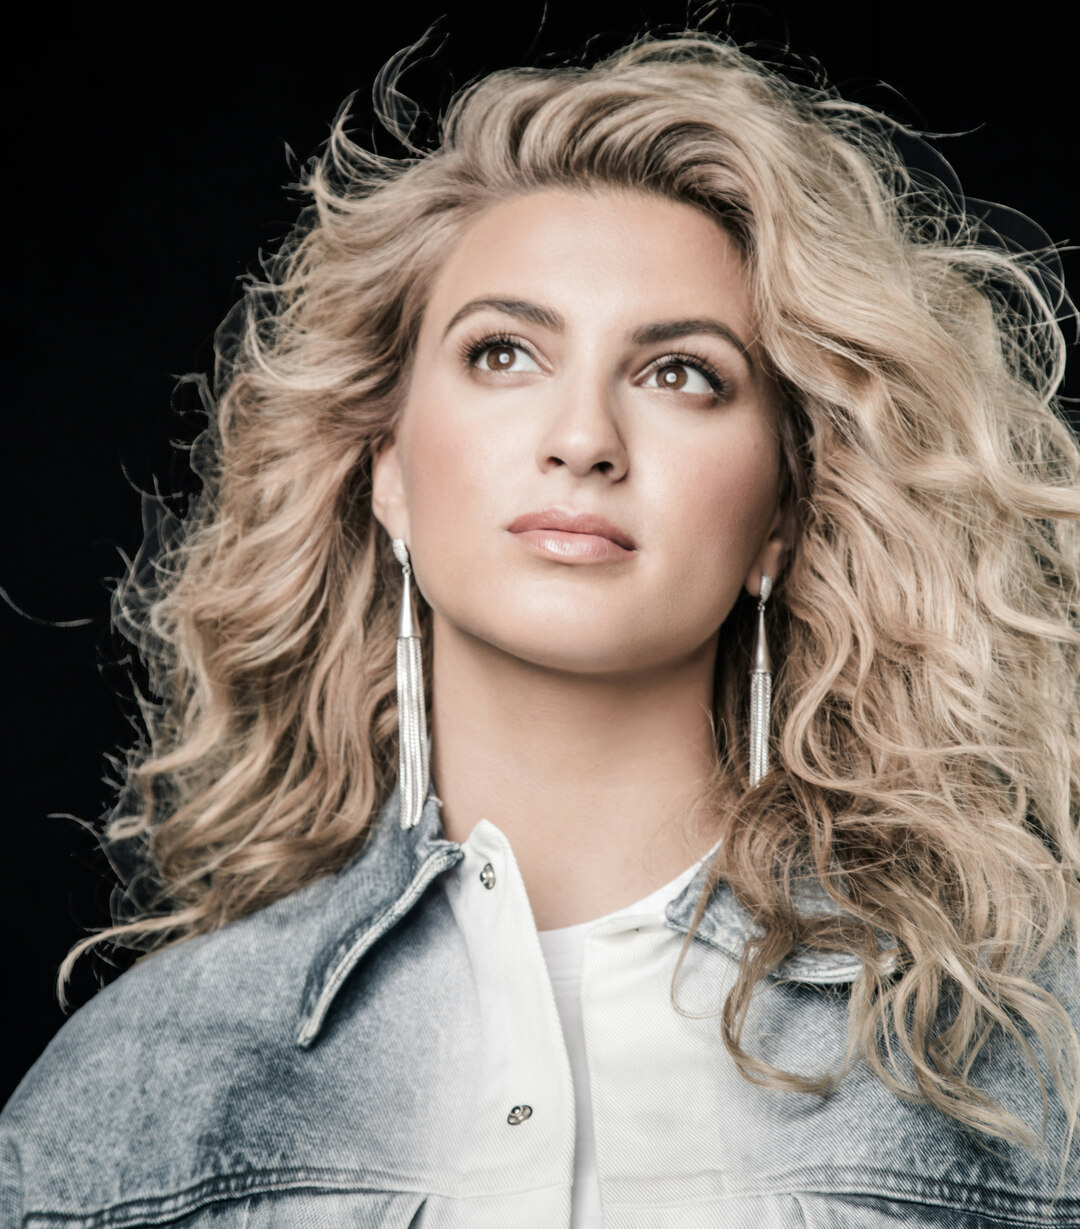 Read story: The Unplanned Superstardom of Tori Kelly